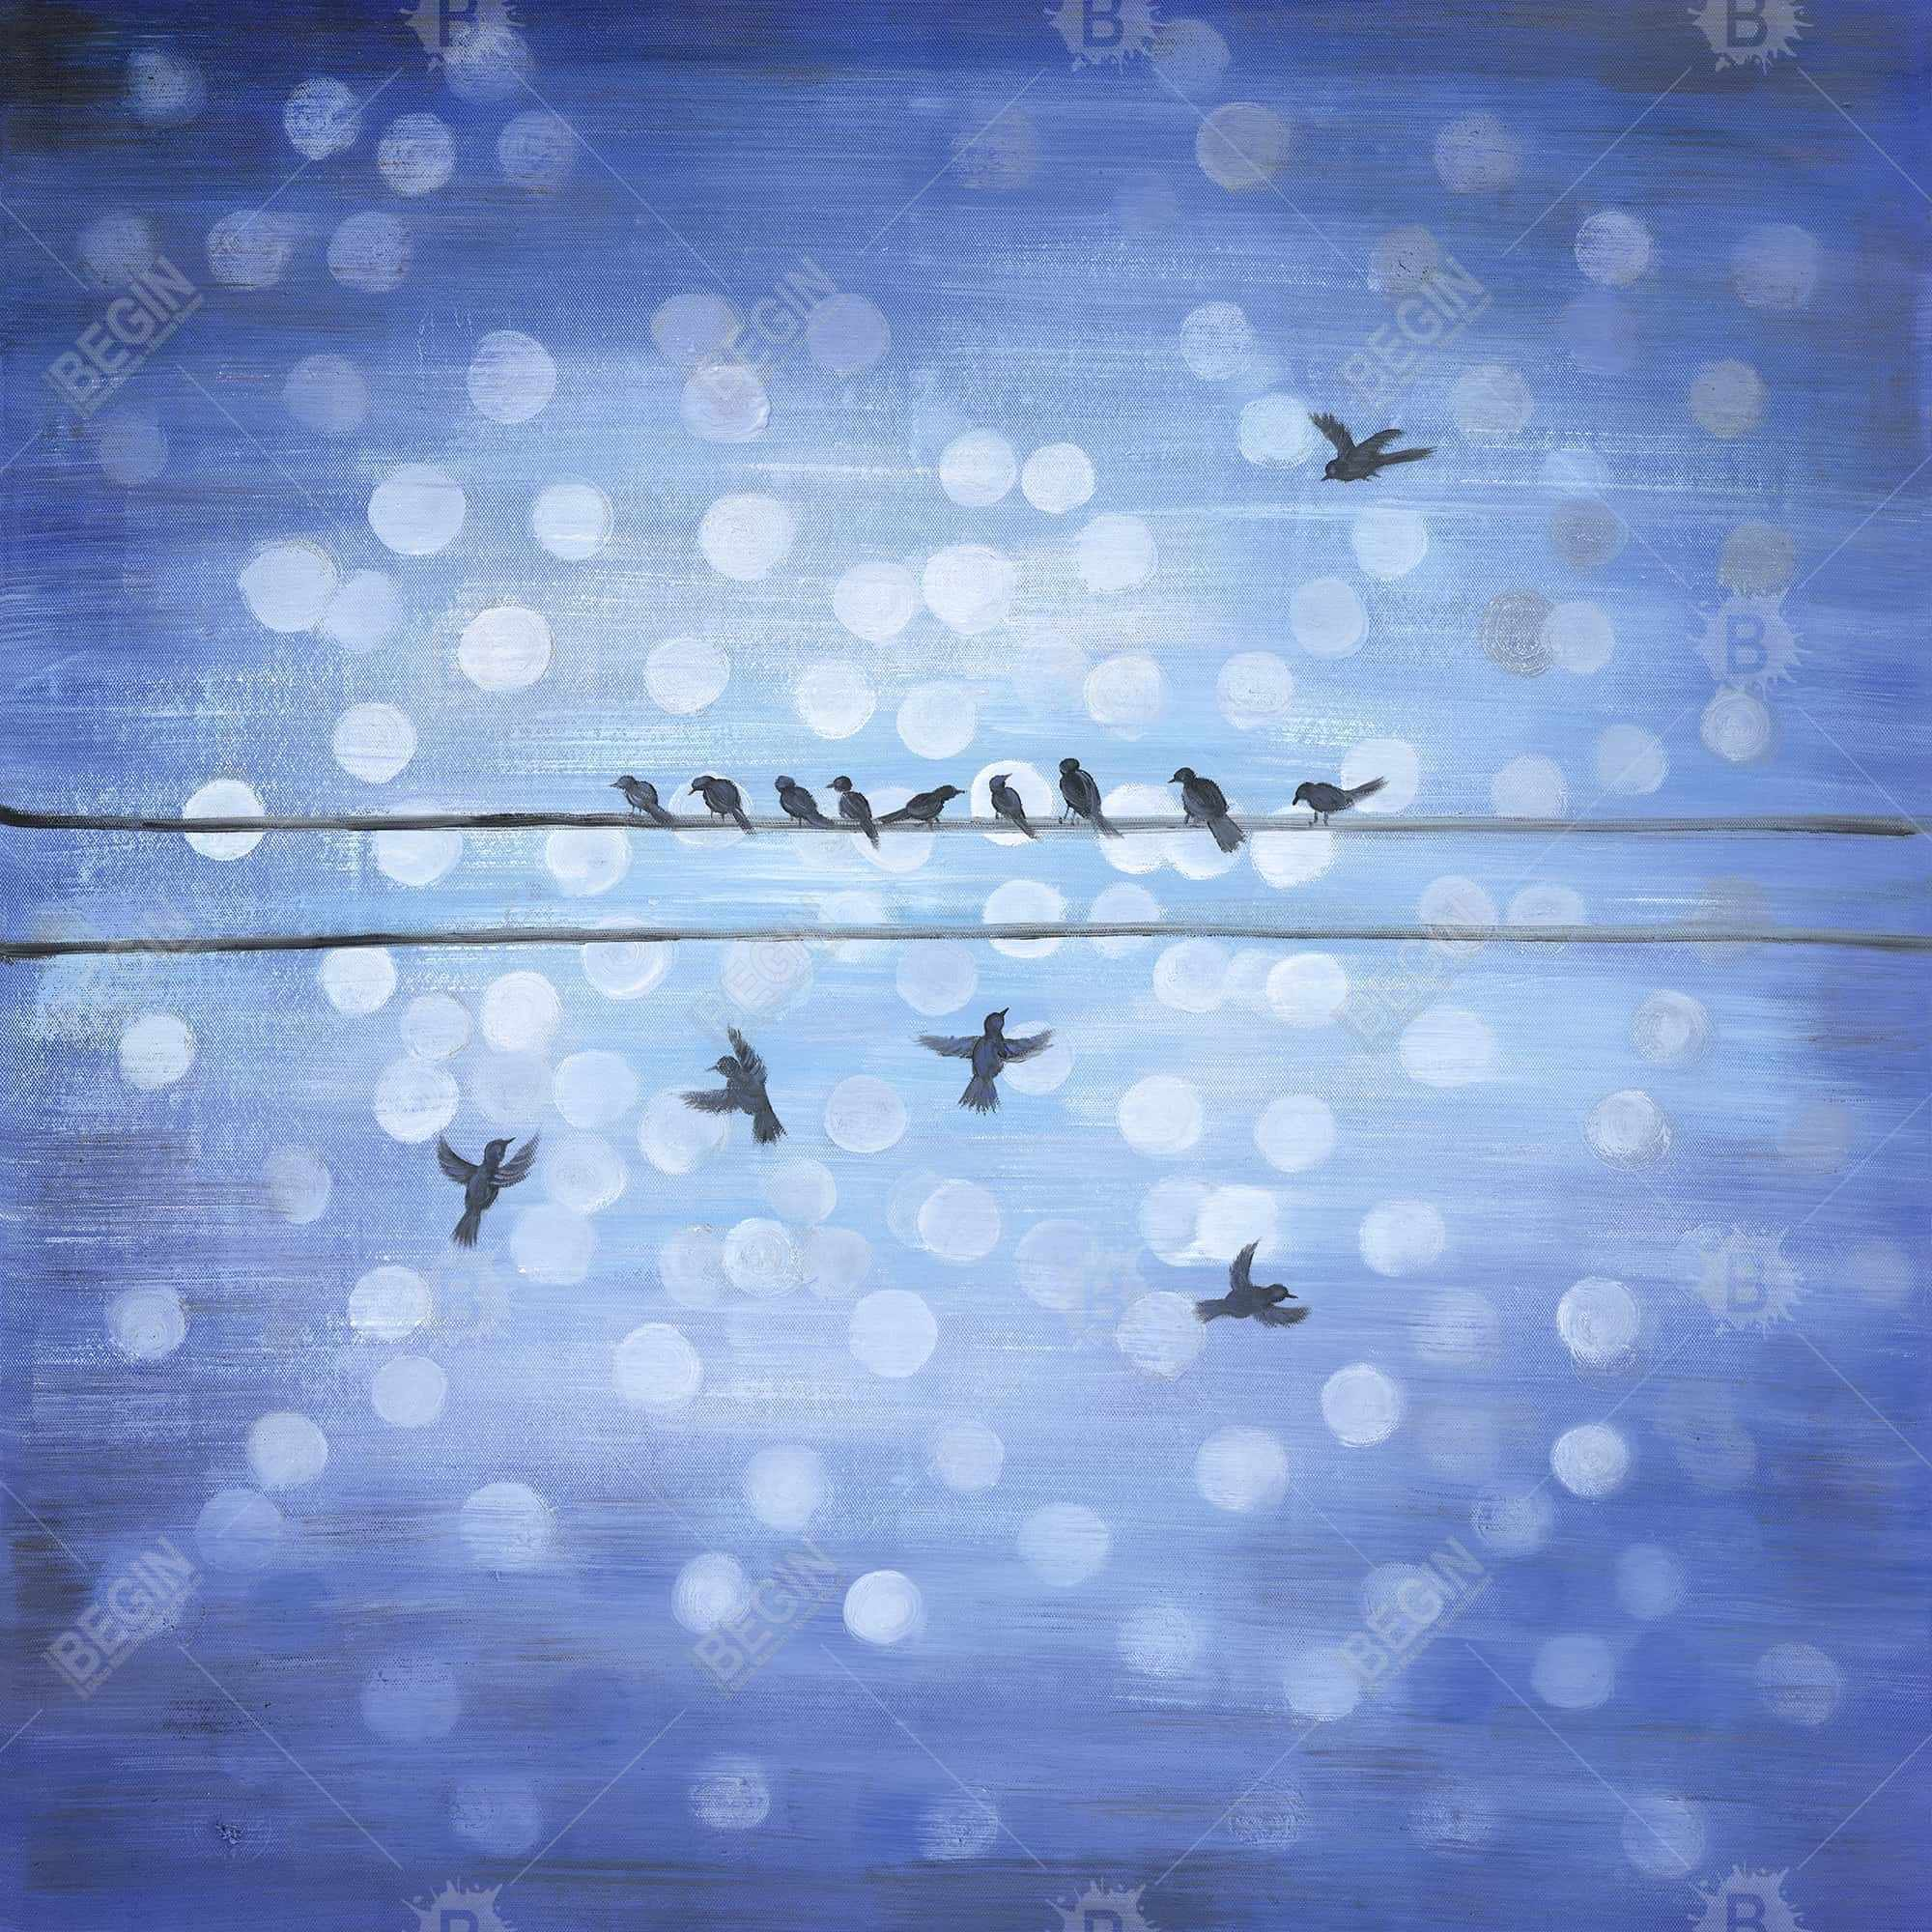 Birds on a wire with a clear blue sky